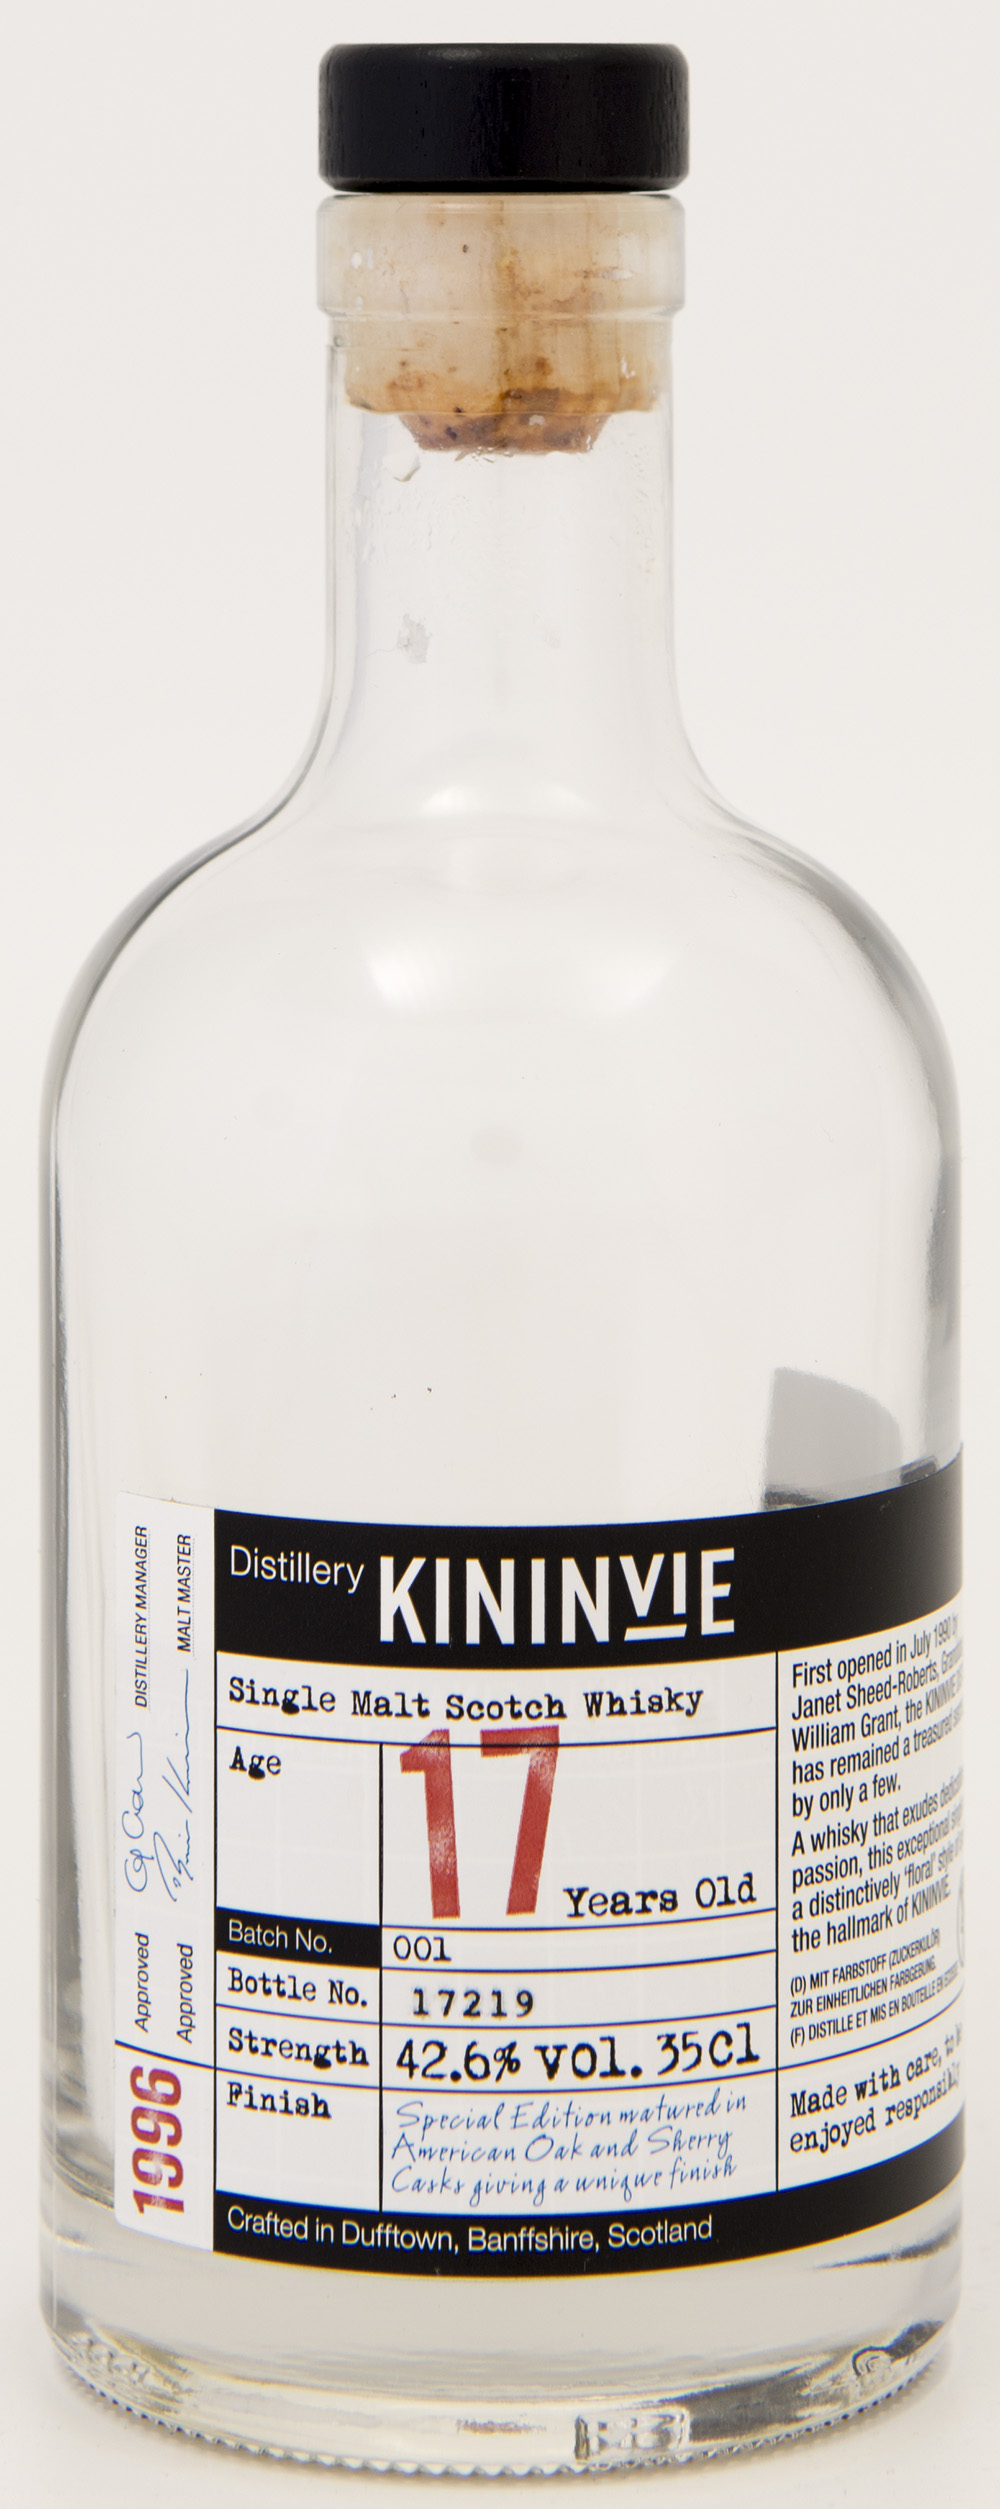 Billede: DSC_1414 - Kininvie 17 travel exclusice batch no 1 - bottle front.jpg